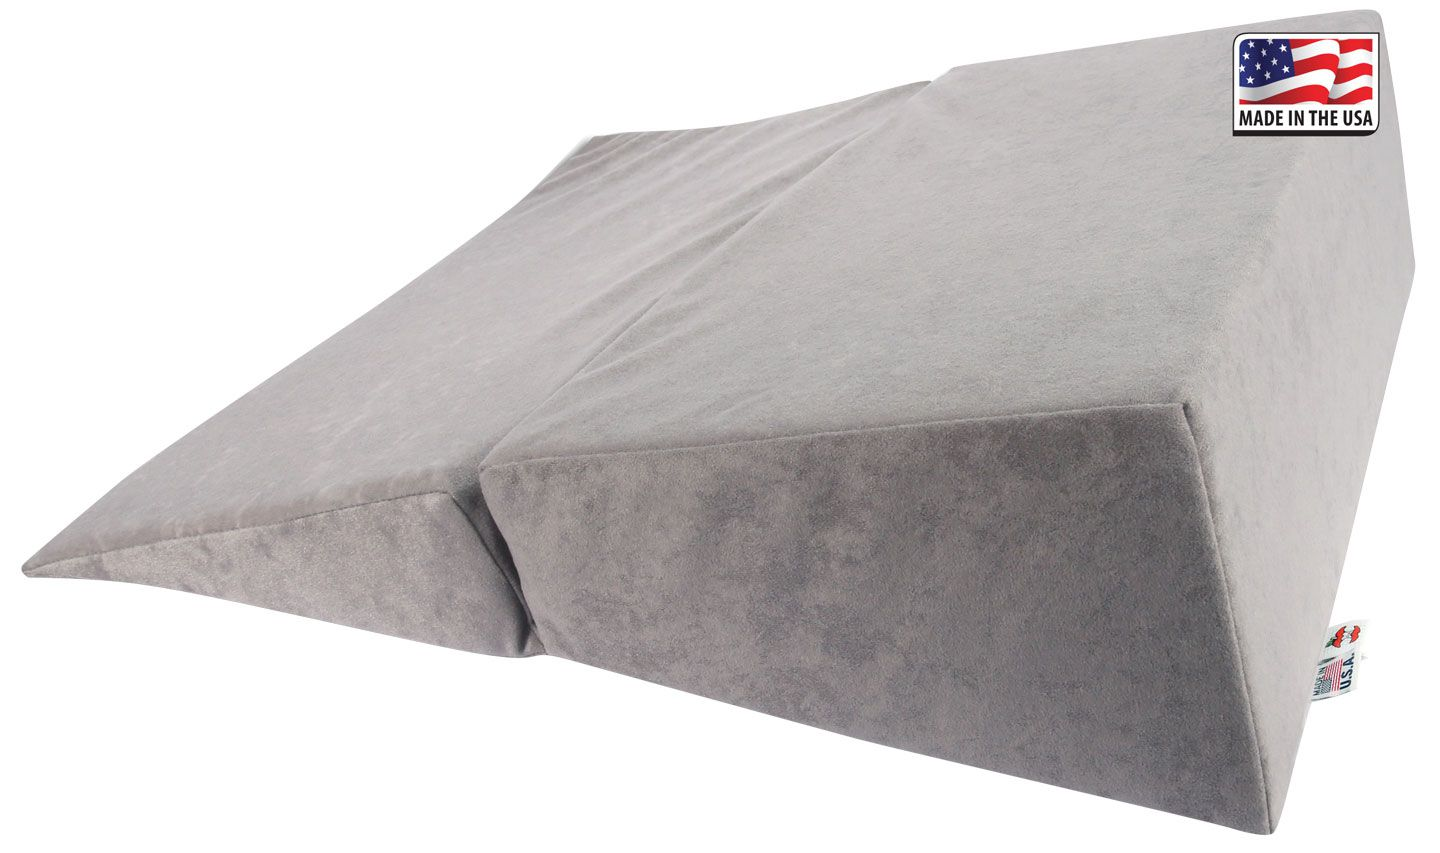 Core Bed Wedge Cushions for Sale  Foam Bed Wedge Pillows